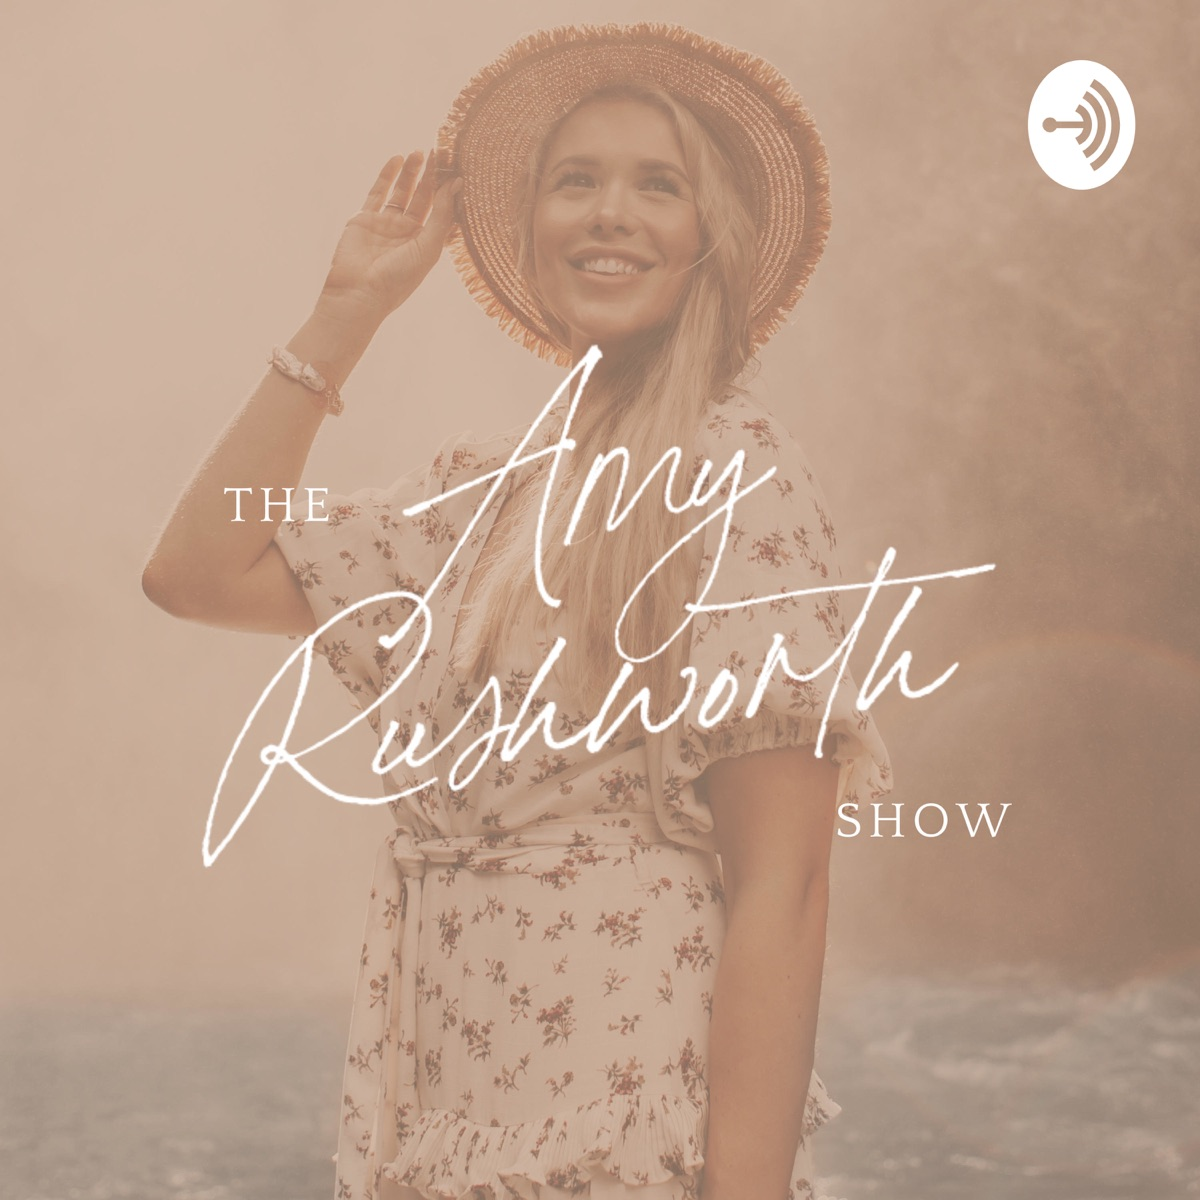 The Amy Rushworth Show